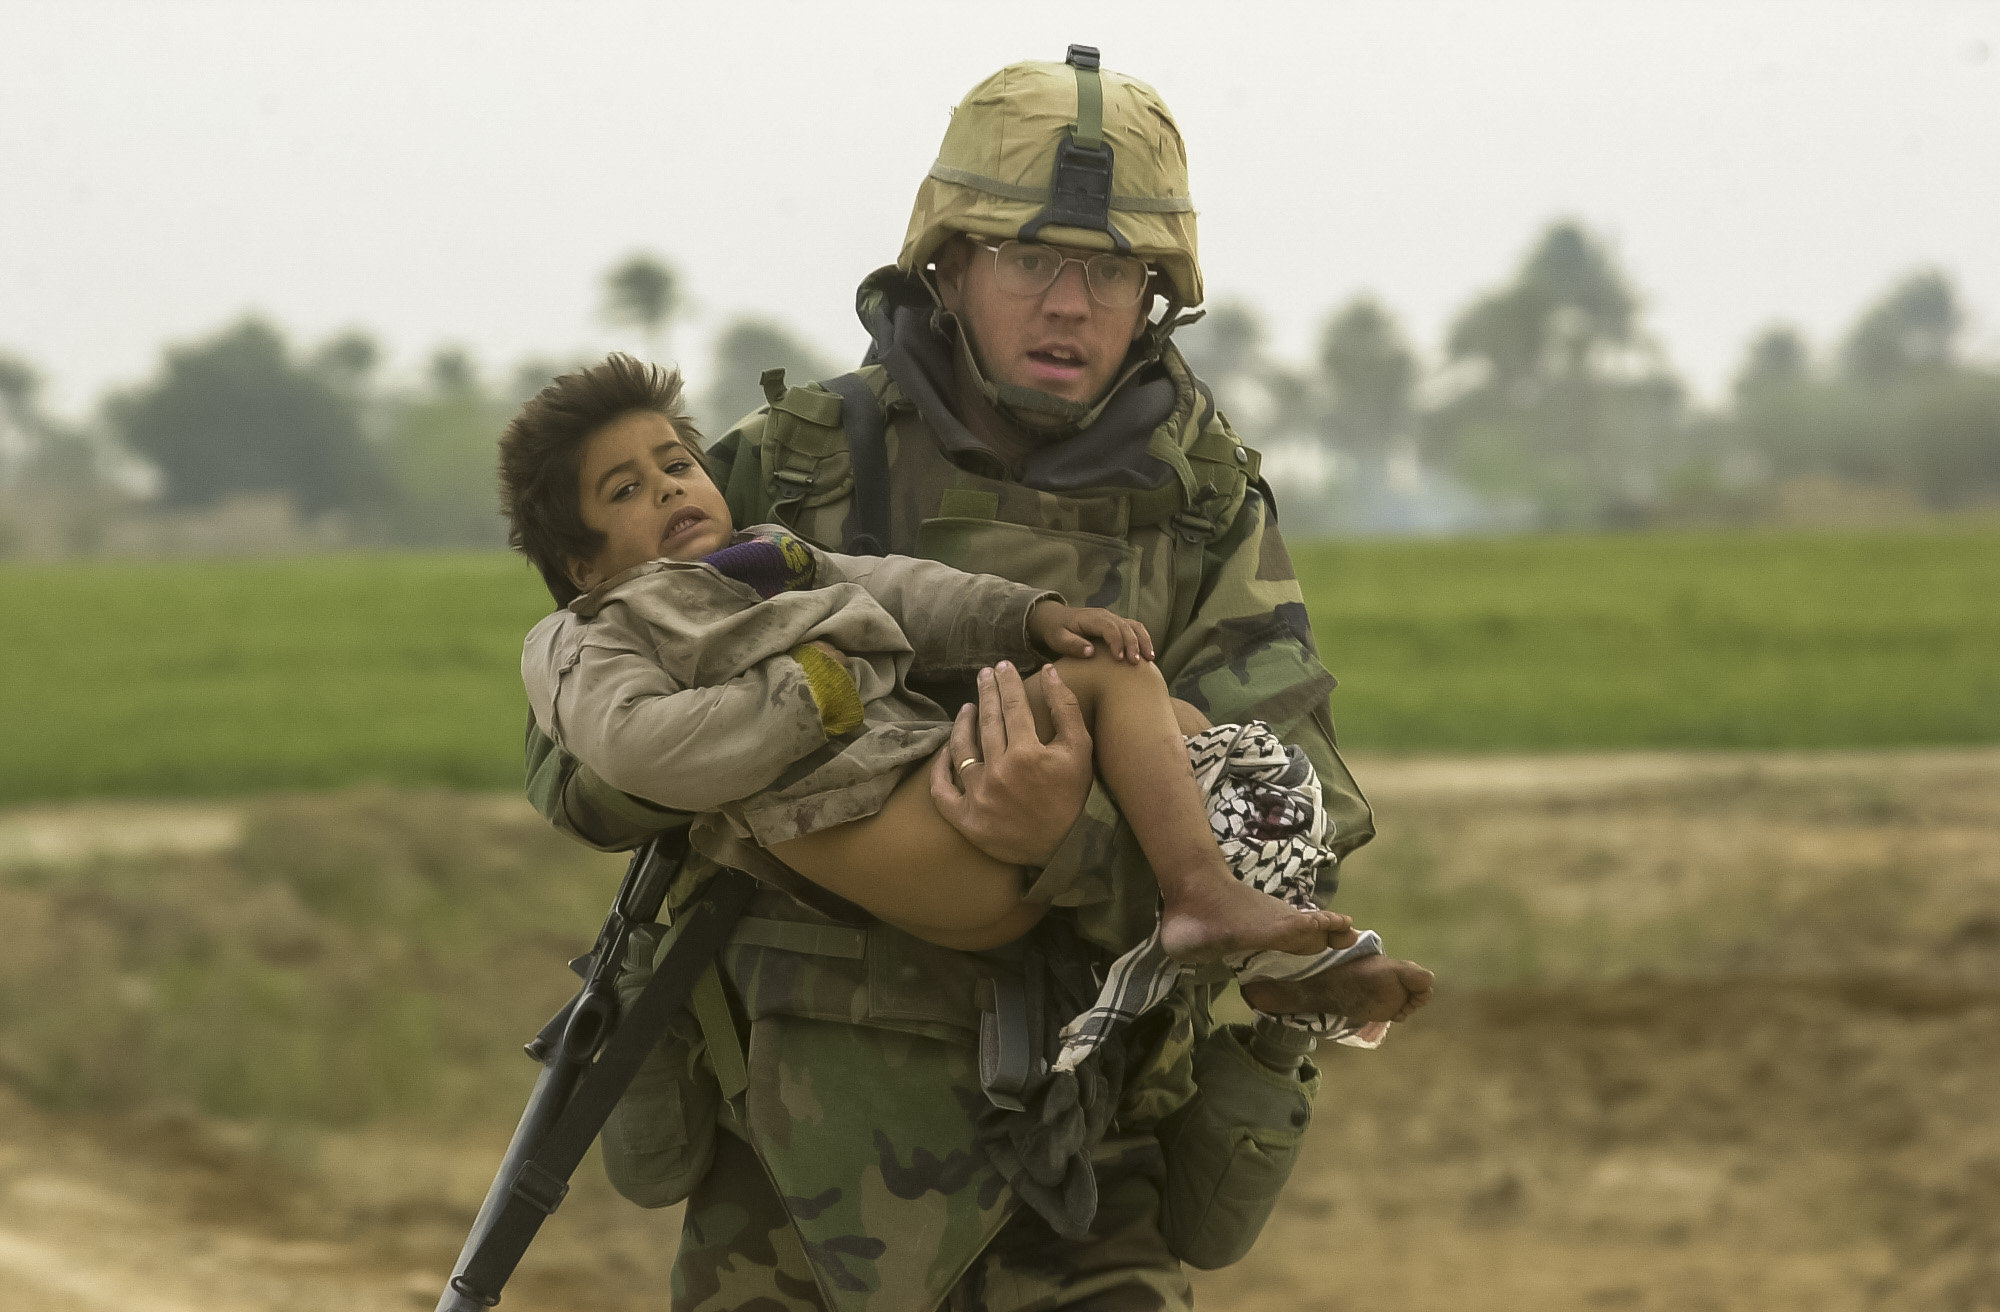 PFC Joseph DeWitt, 26, from Suffock County, Ny, runs while carrying a young Iraqi boy who was injured during a heavy batle between the U.S. Army's 7th Cavalry Regiment and Iraqi forces near the village of Al Faysaliyah, Iraq. The Cavalry spent the entire night fighting through the areas and within the city of Al Faysaliyah. The U.S. took no casualties while the Iraqis took estimated 150 casualties inflicted by the Cavalry on March 25, 2003. (Warren Zinn/Army Times)